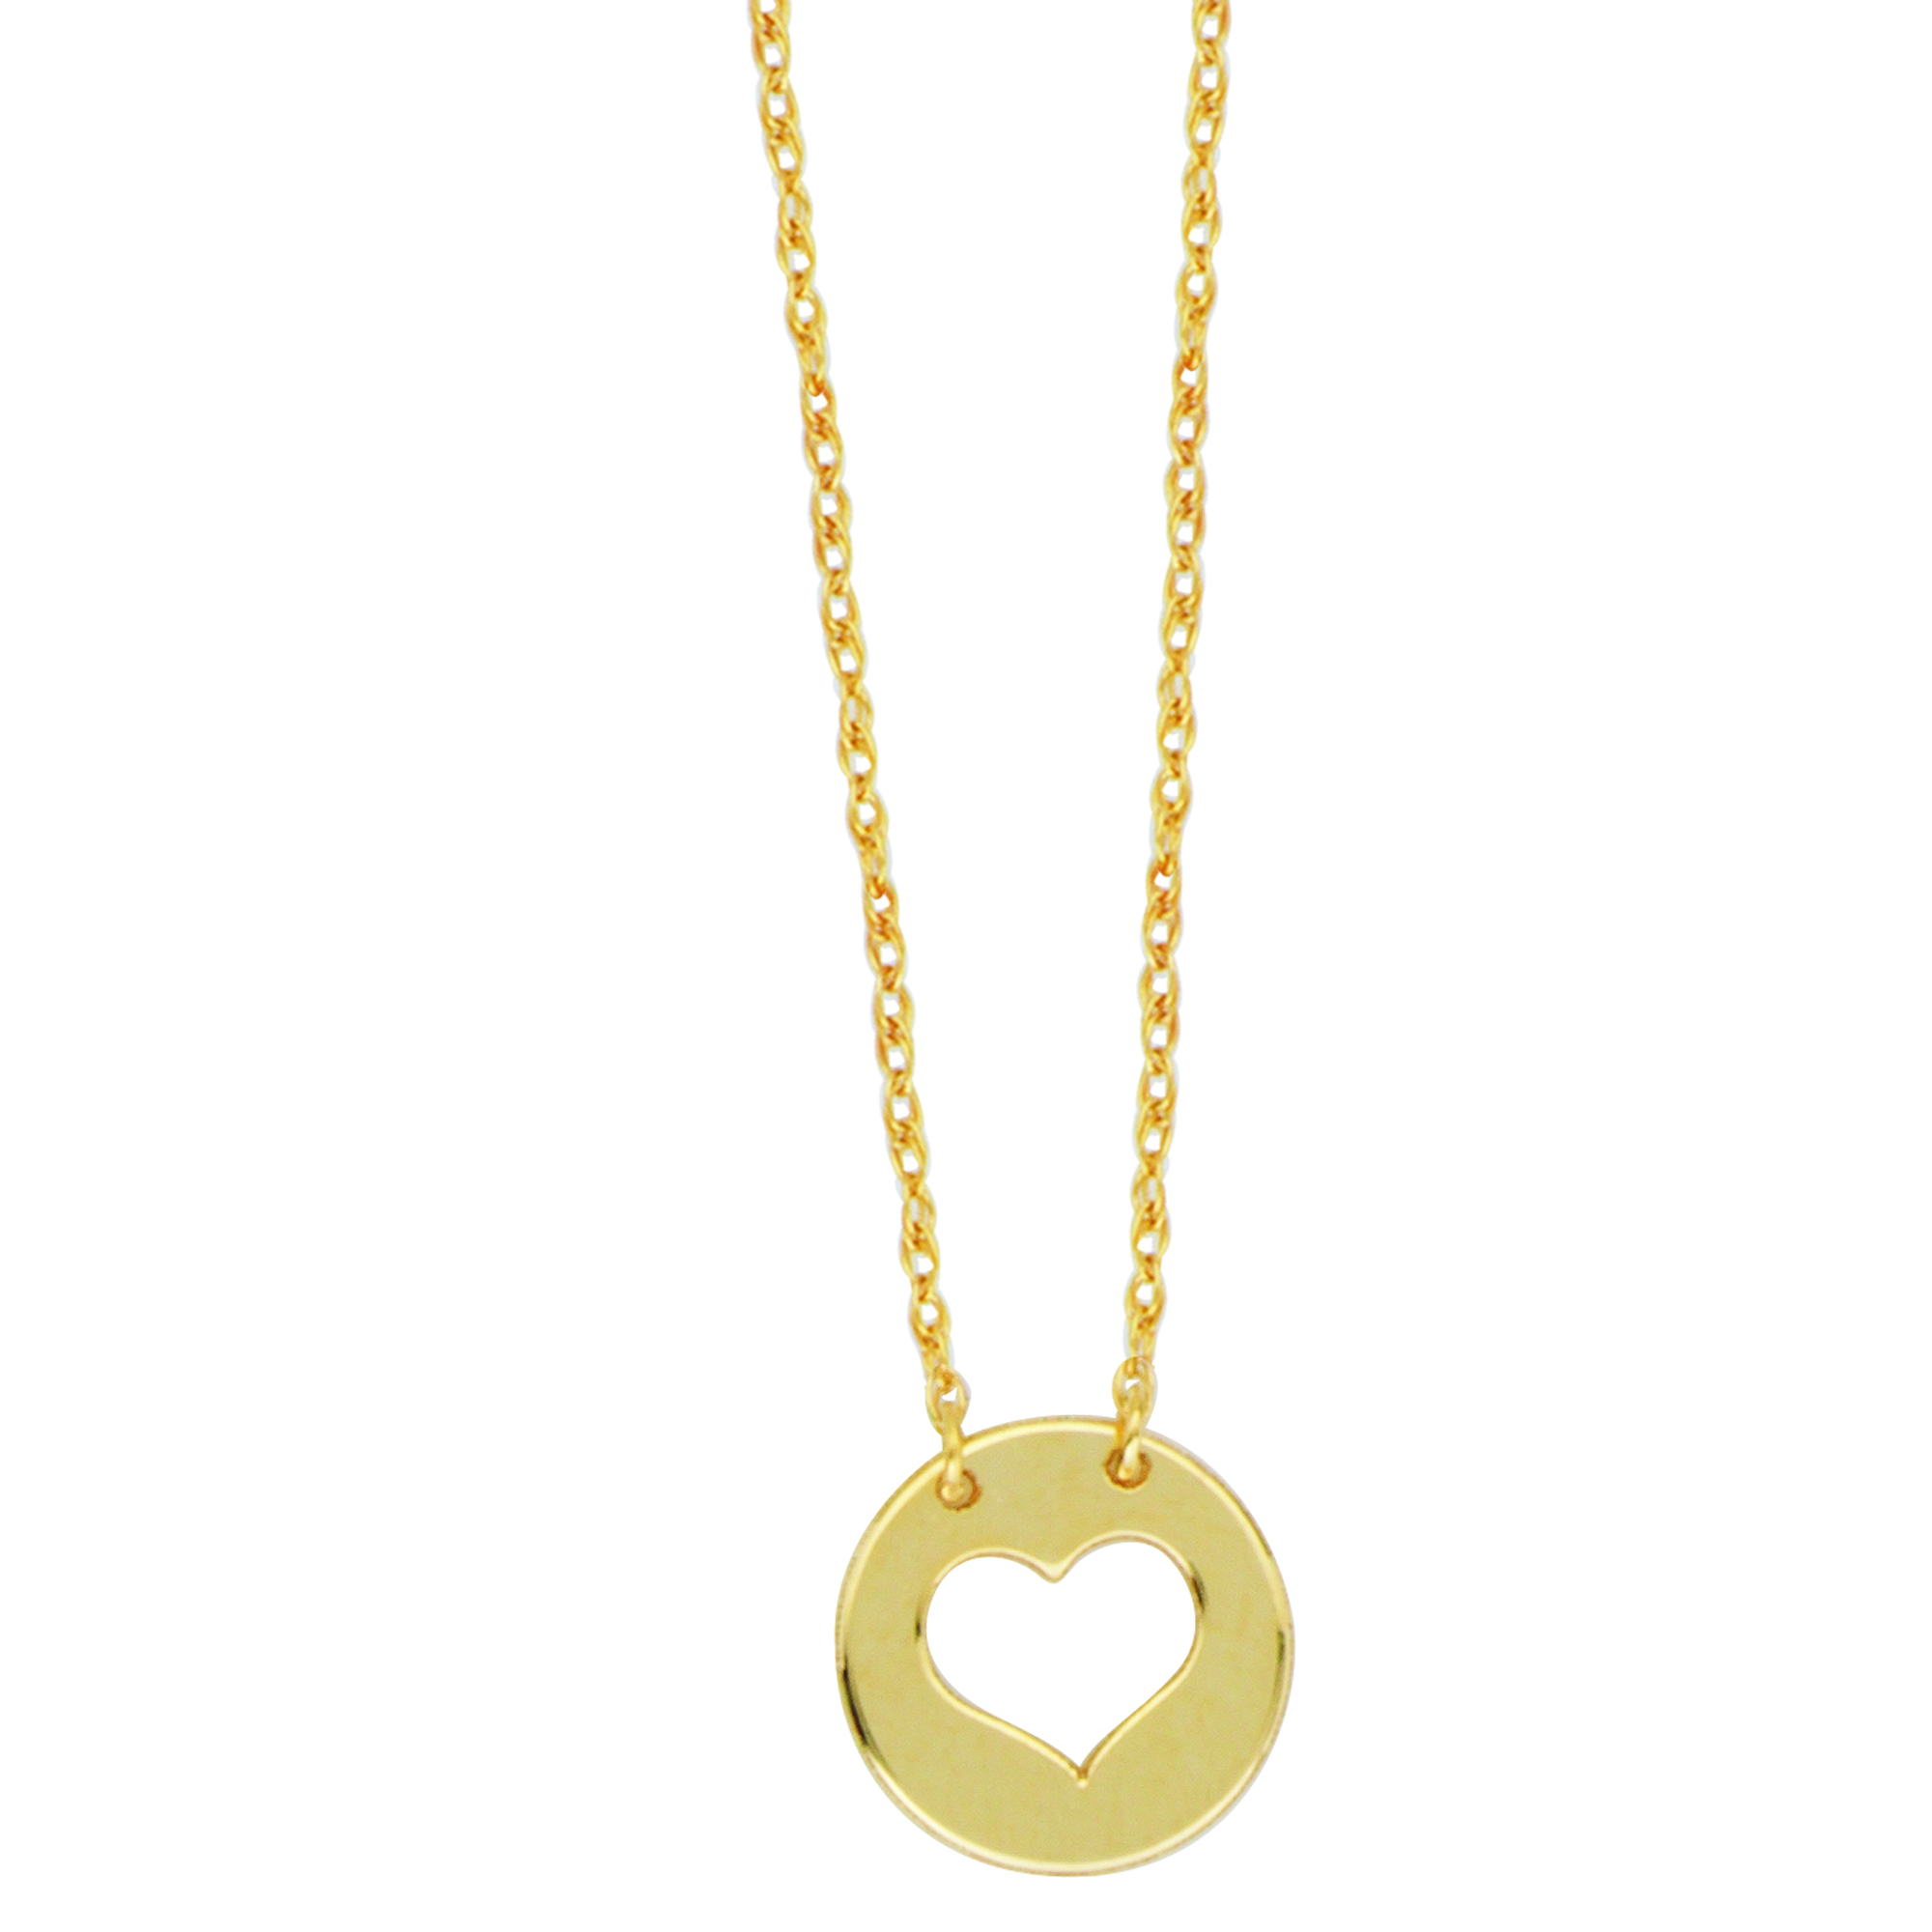 Heart Necklace,14Kt Gold Heart Necklace 18